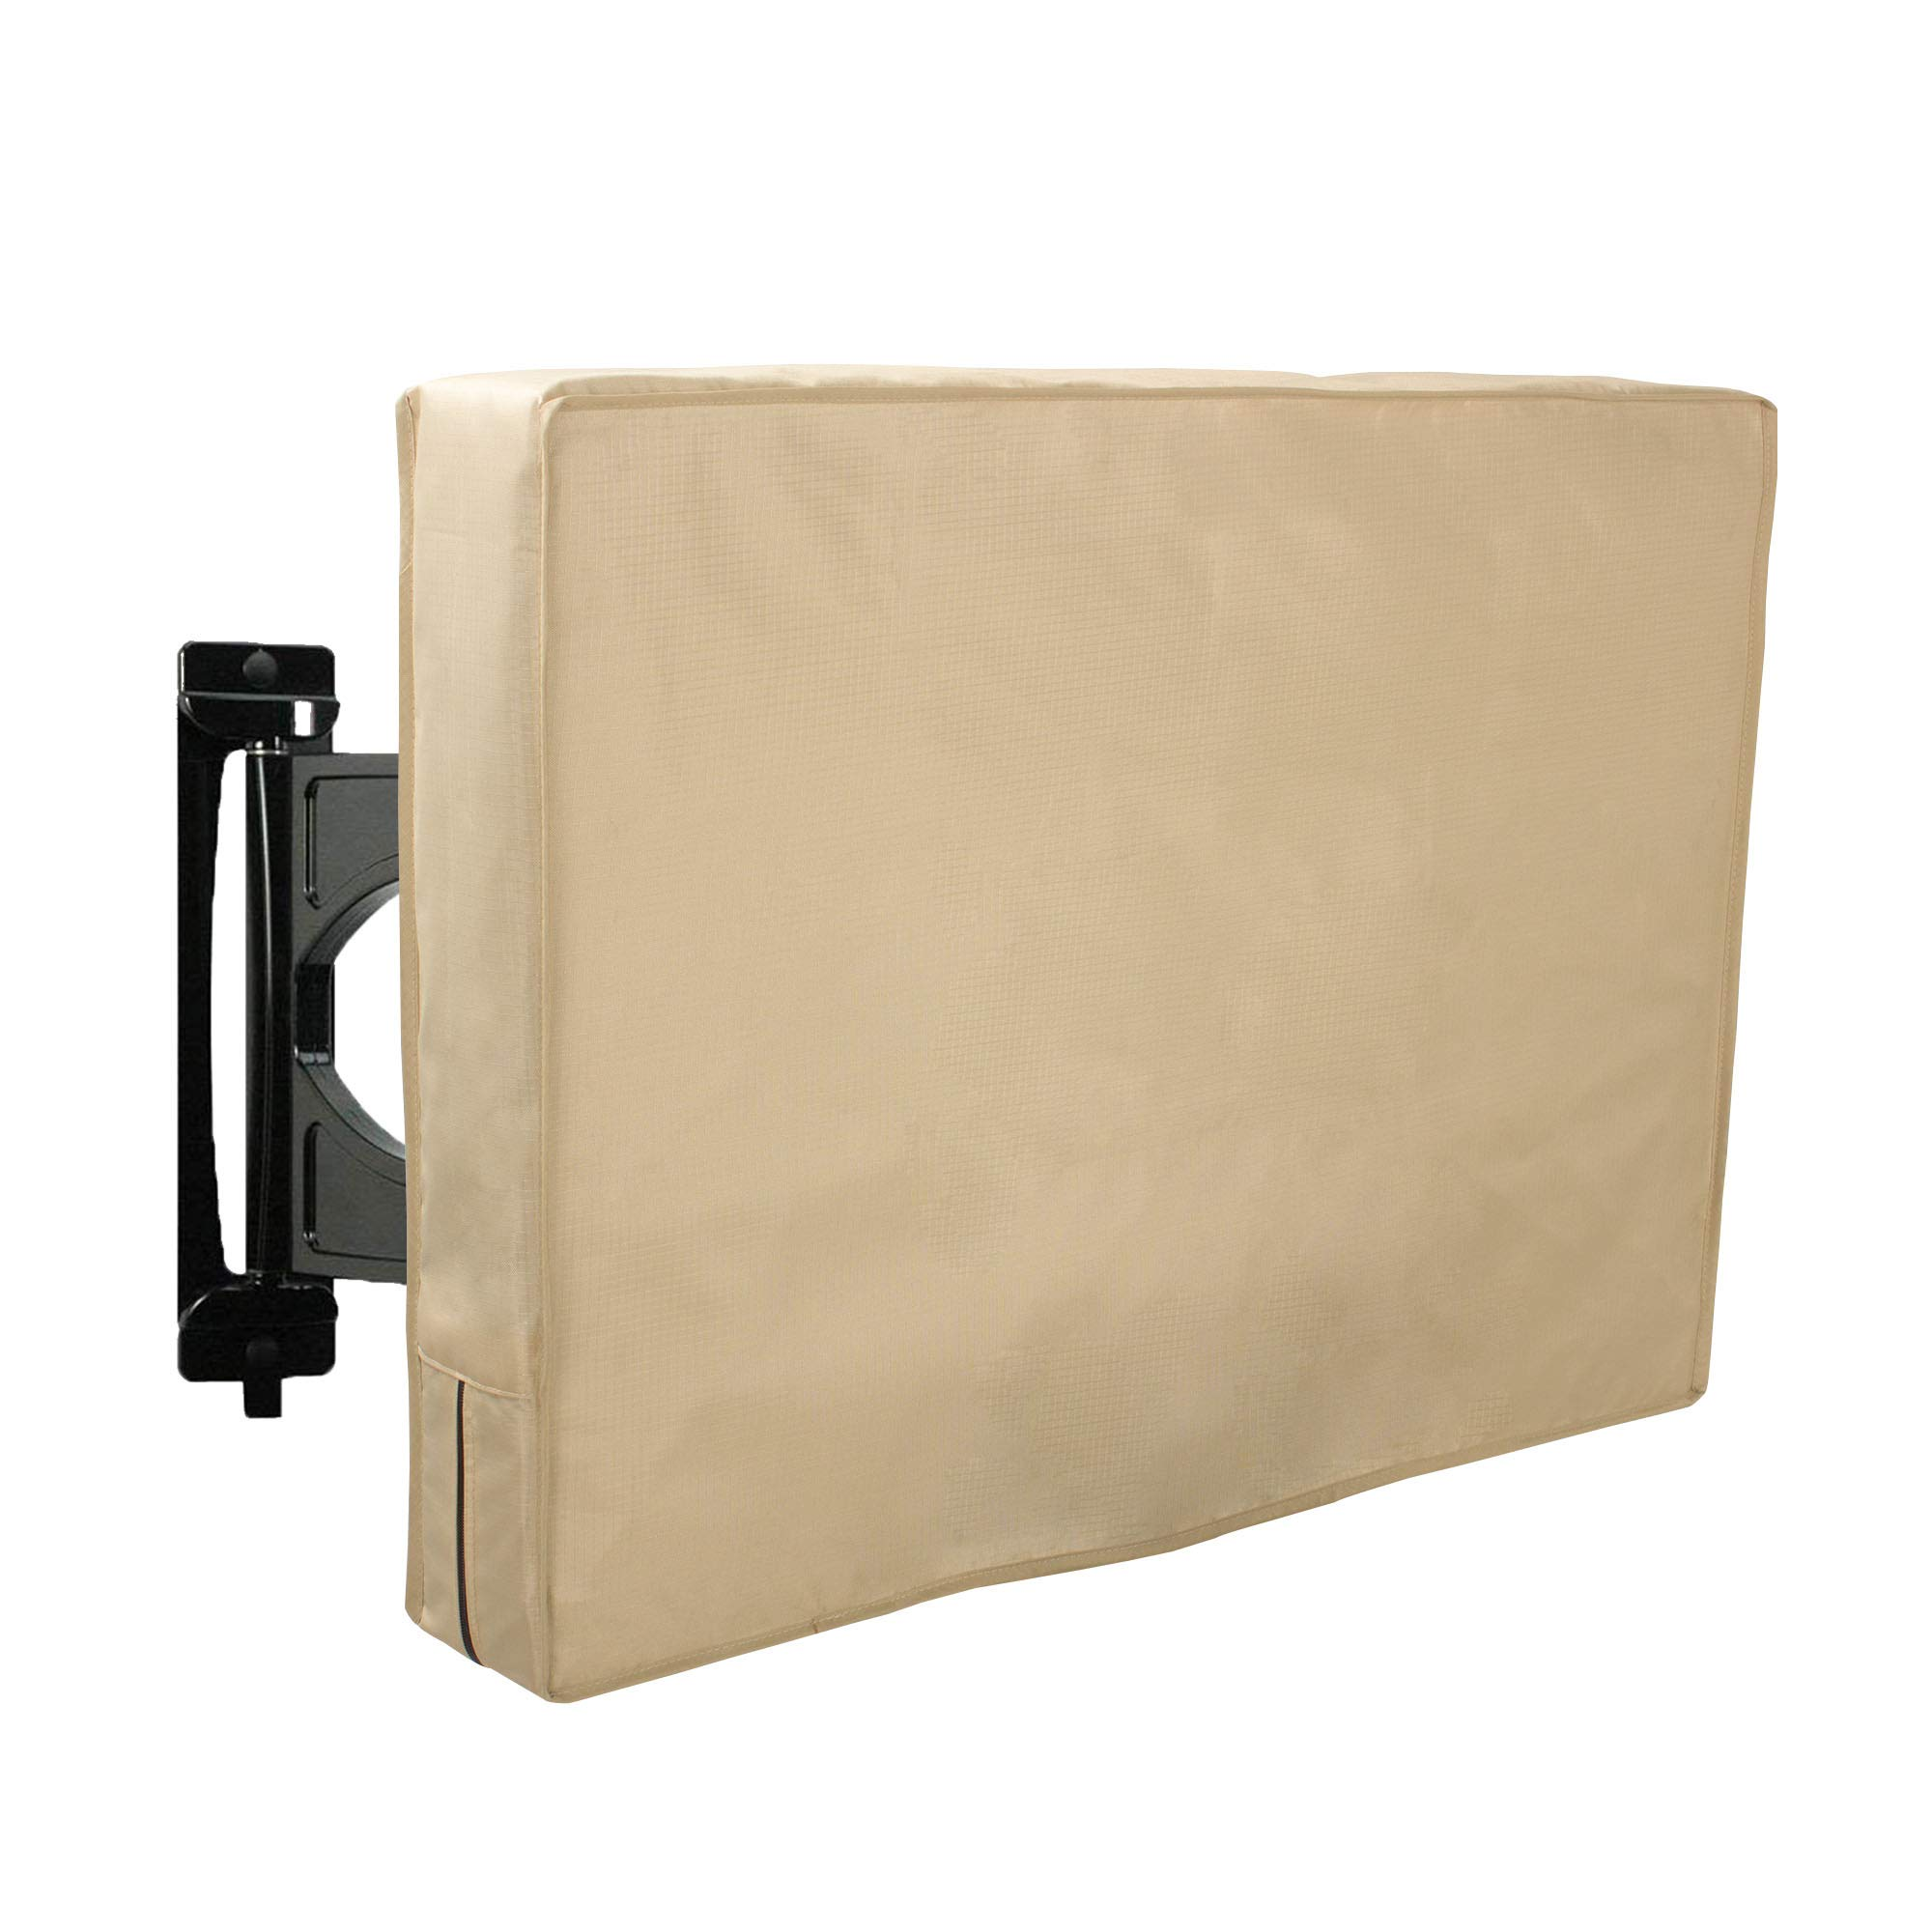 Hentex Outdoor TV Cover 55'' Universal Weatherproof,Fits Most TV Mounts and Stands, Khaki(5103) by Hentex